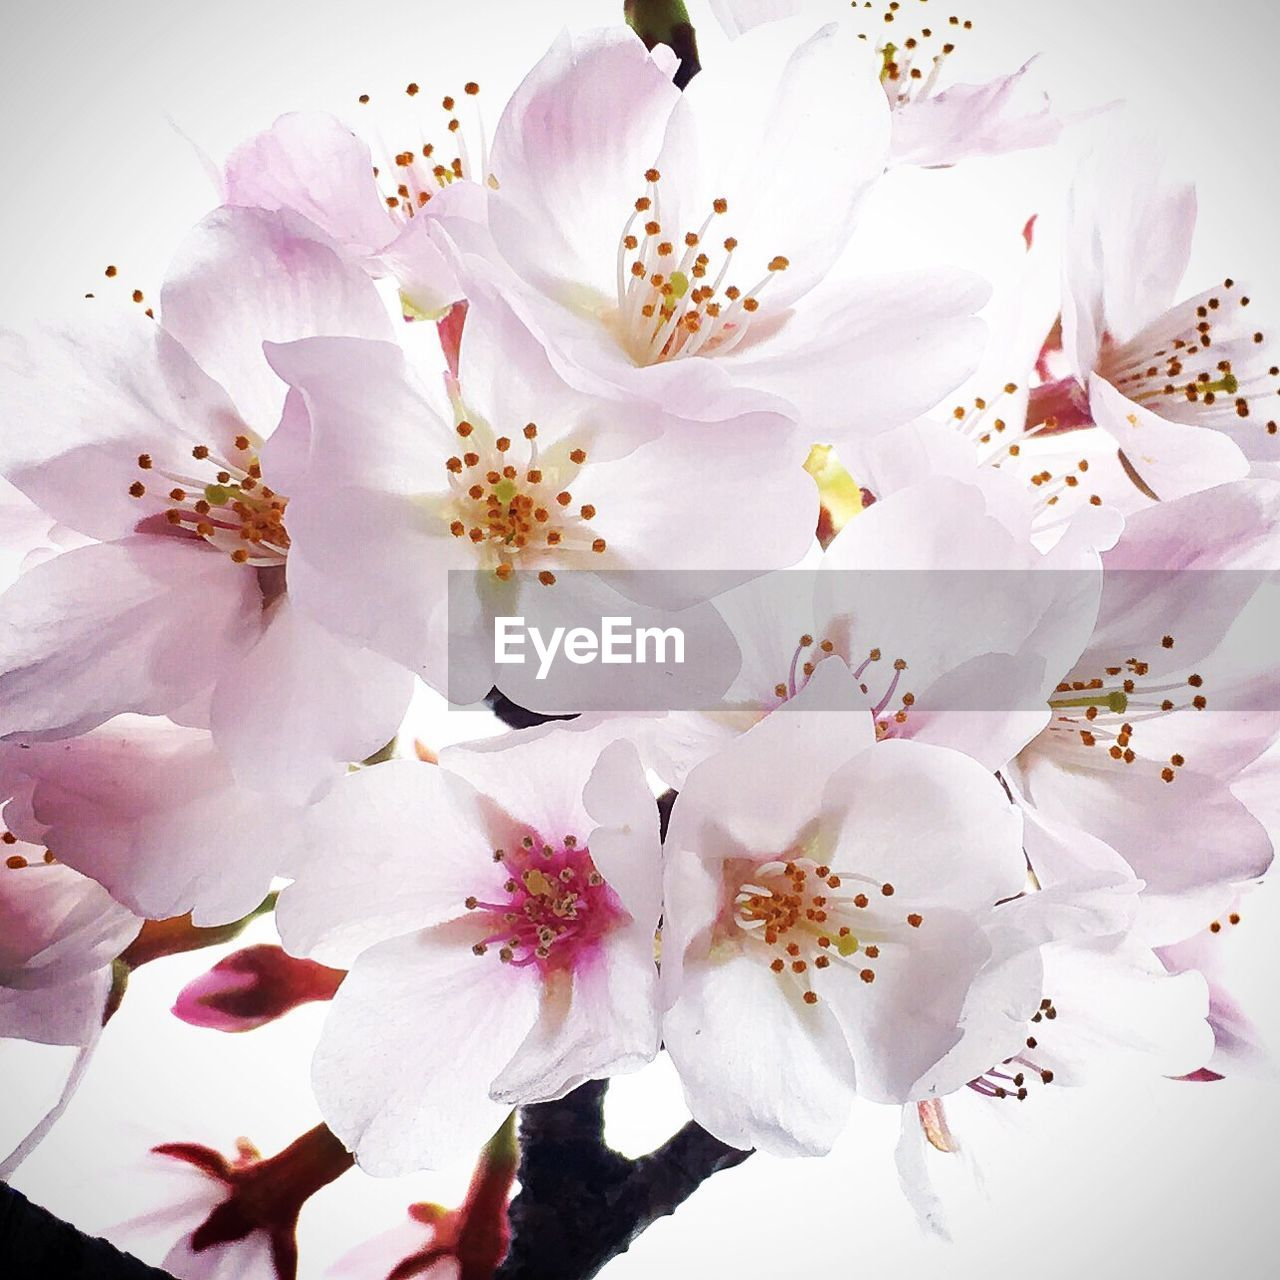 flower, blossom, springtime, fragility, white color, cherry blossom, freshness, beauty in nature, stamen, botany, petal, apple blossom, pollen, almond tree, cherry tree, apple tree, nature, orchard, no people, flower head, close-up, tree, growth, branch, pink color, day, full frame, backgrounds, outdoors